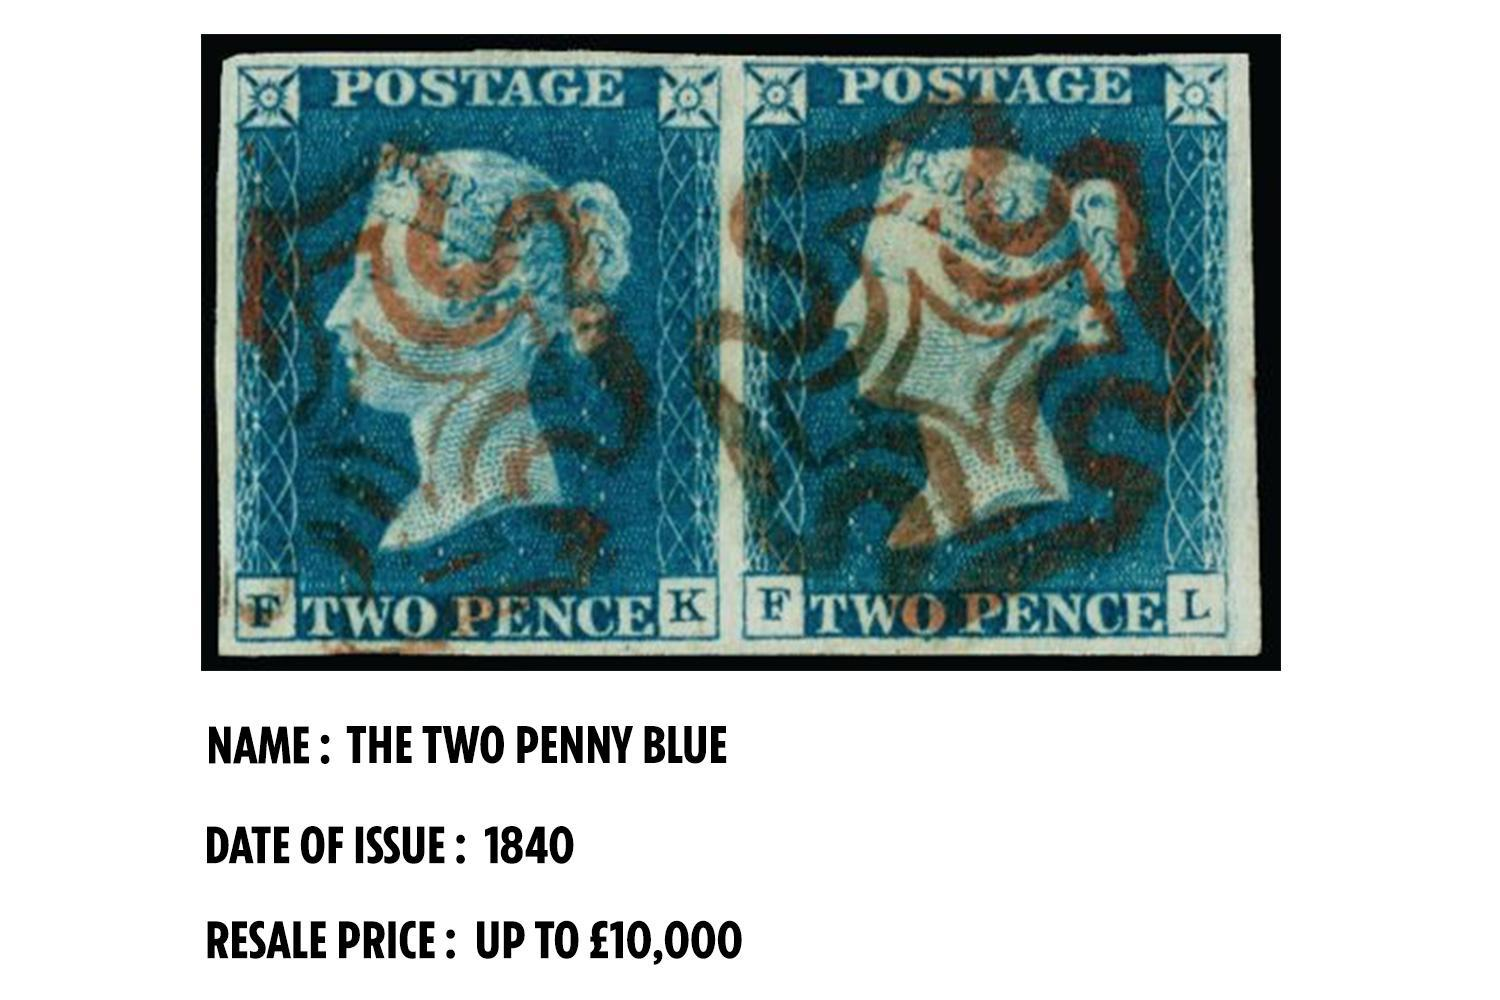 The Two Penny Blue is the world's second stamp